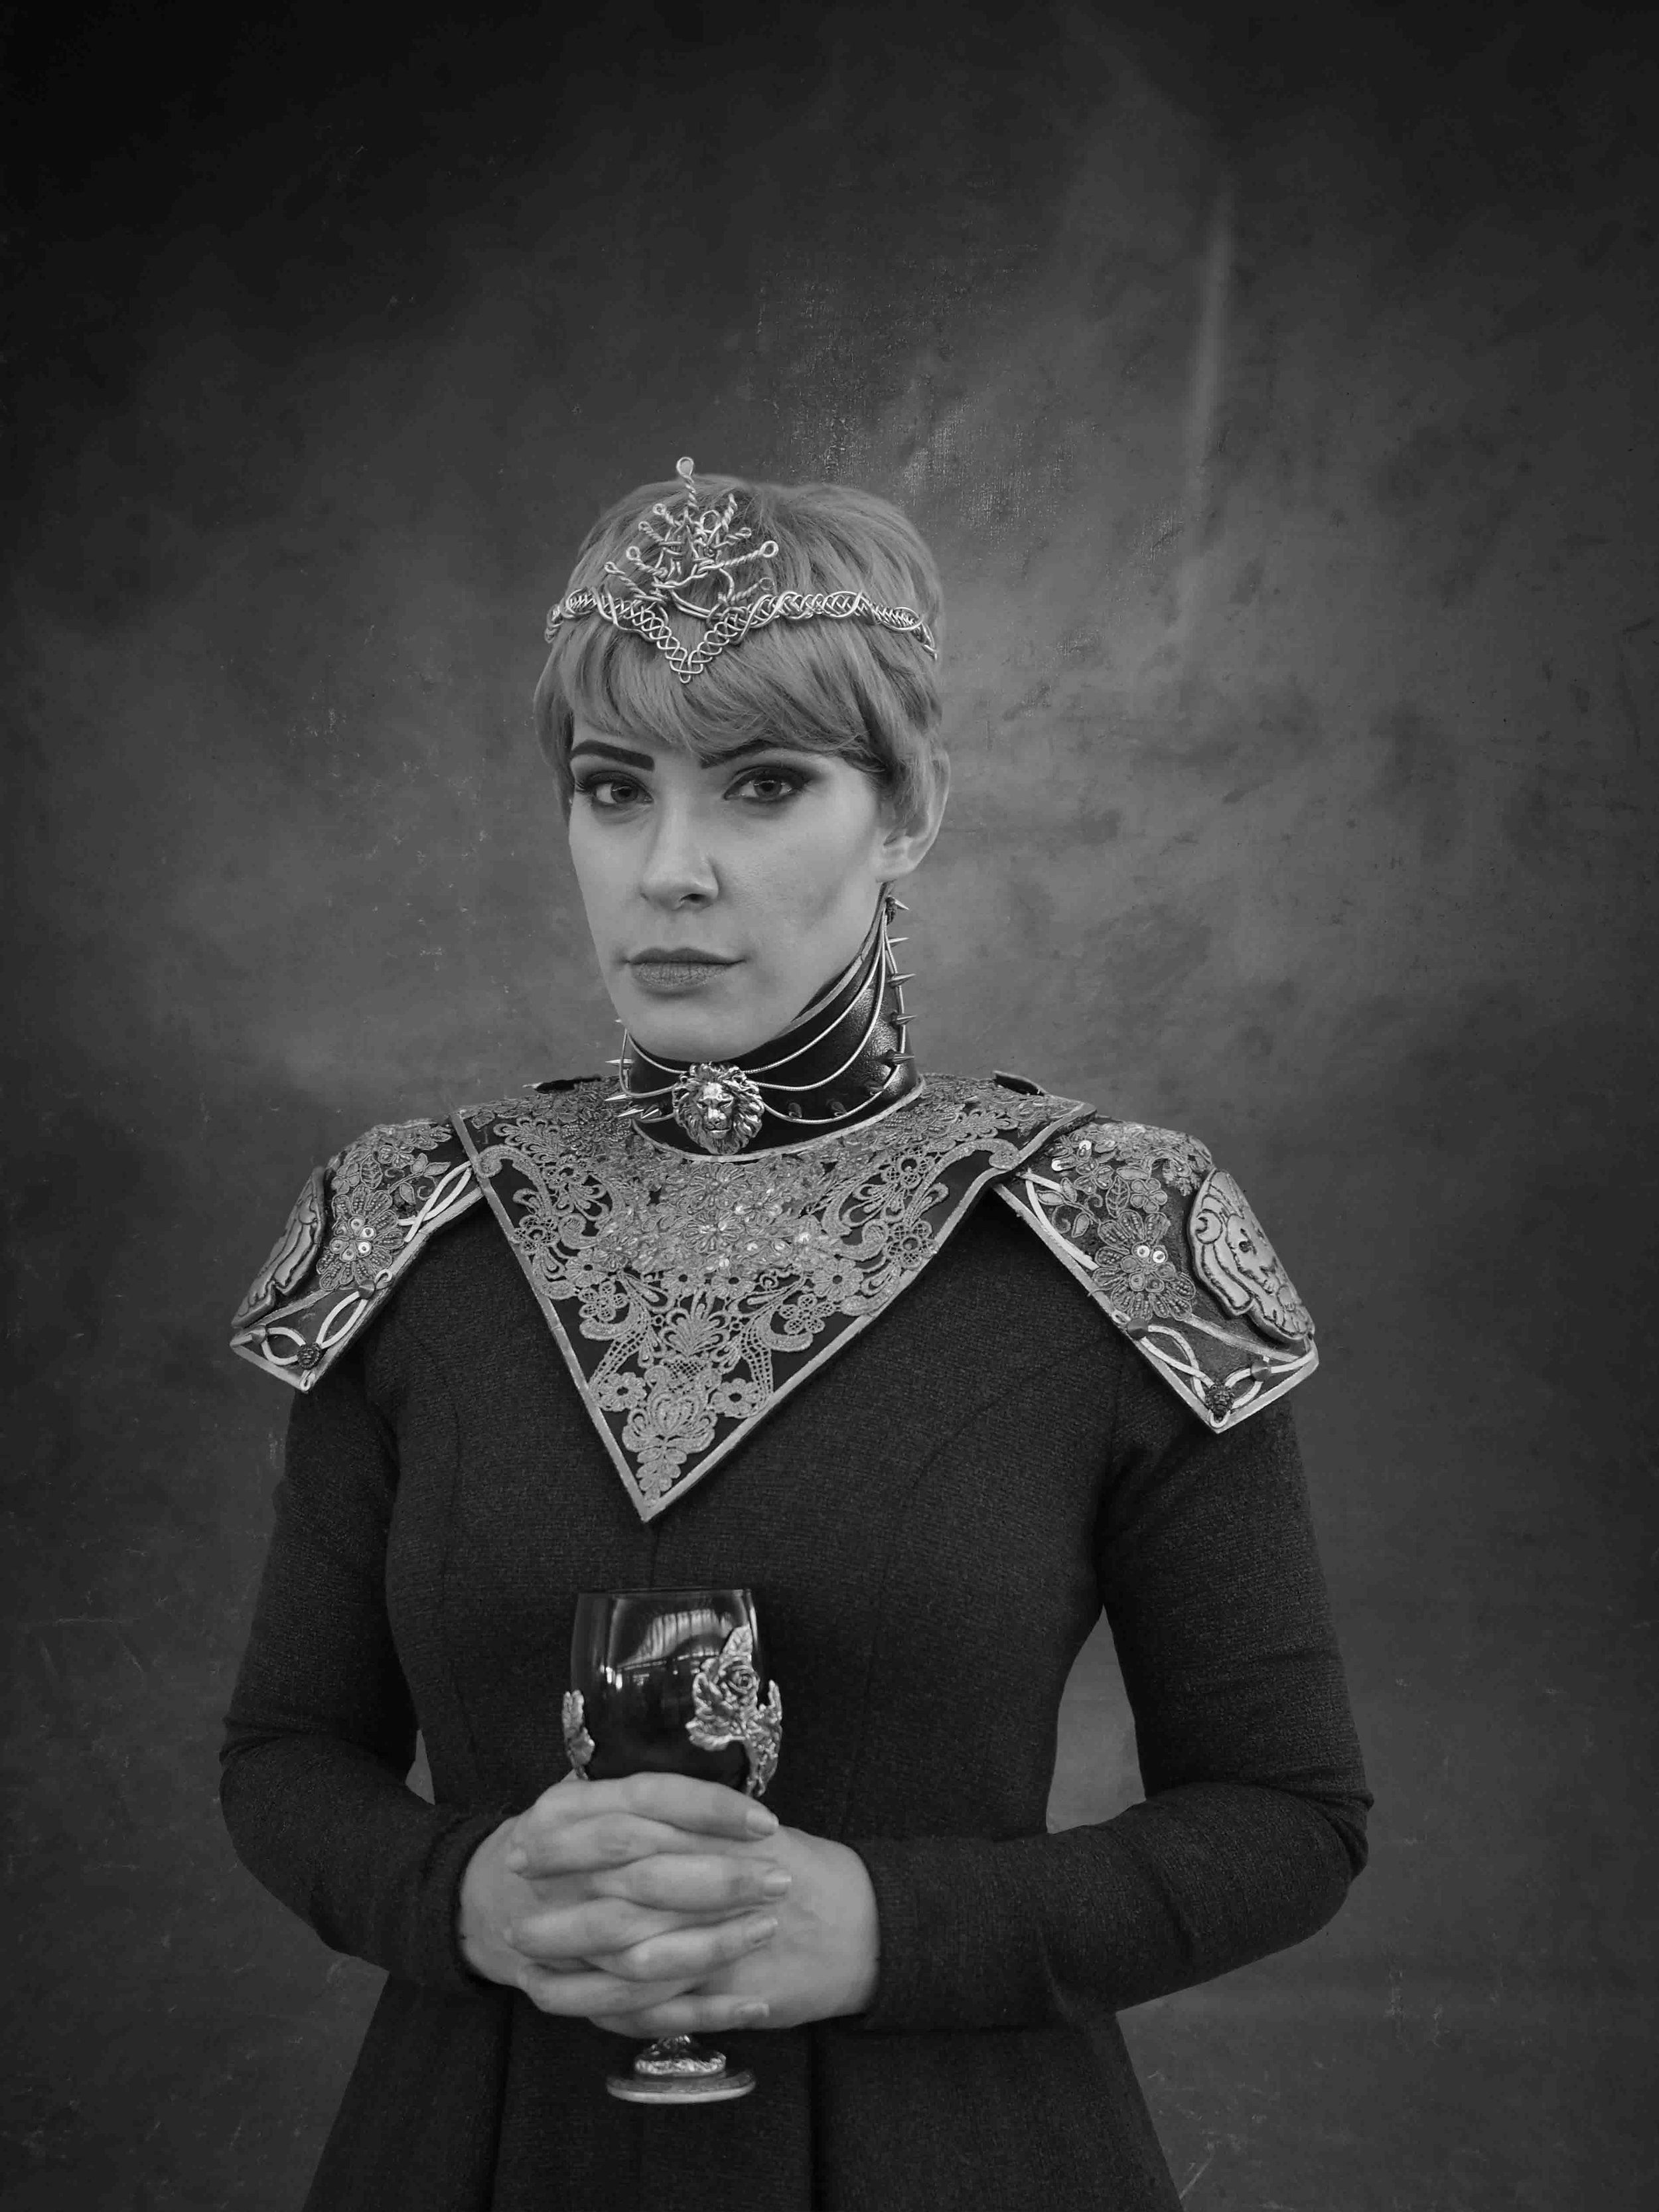 Cersei Lannister - Inspired by Game of ThronesQueen Dowager, Lady of Casterly Rock, Lady Paramount of the Westerlands and Queen Regent of the Seven KingdomsCOSPLAY BY | Jax